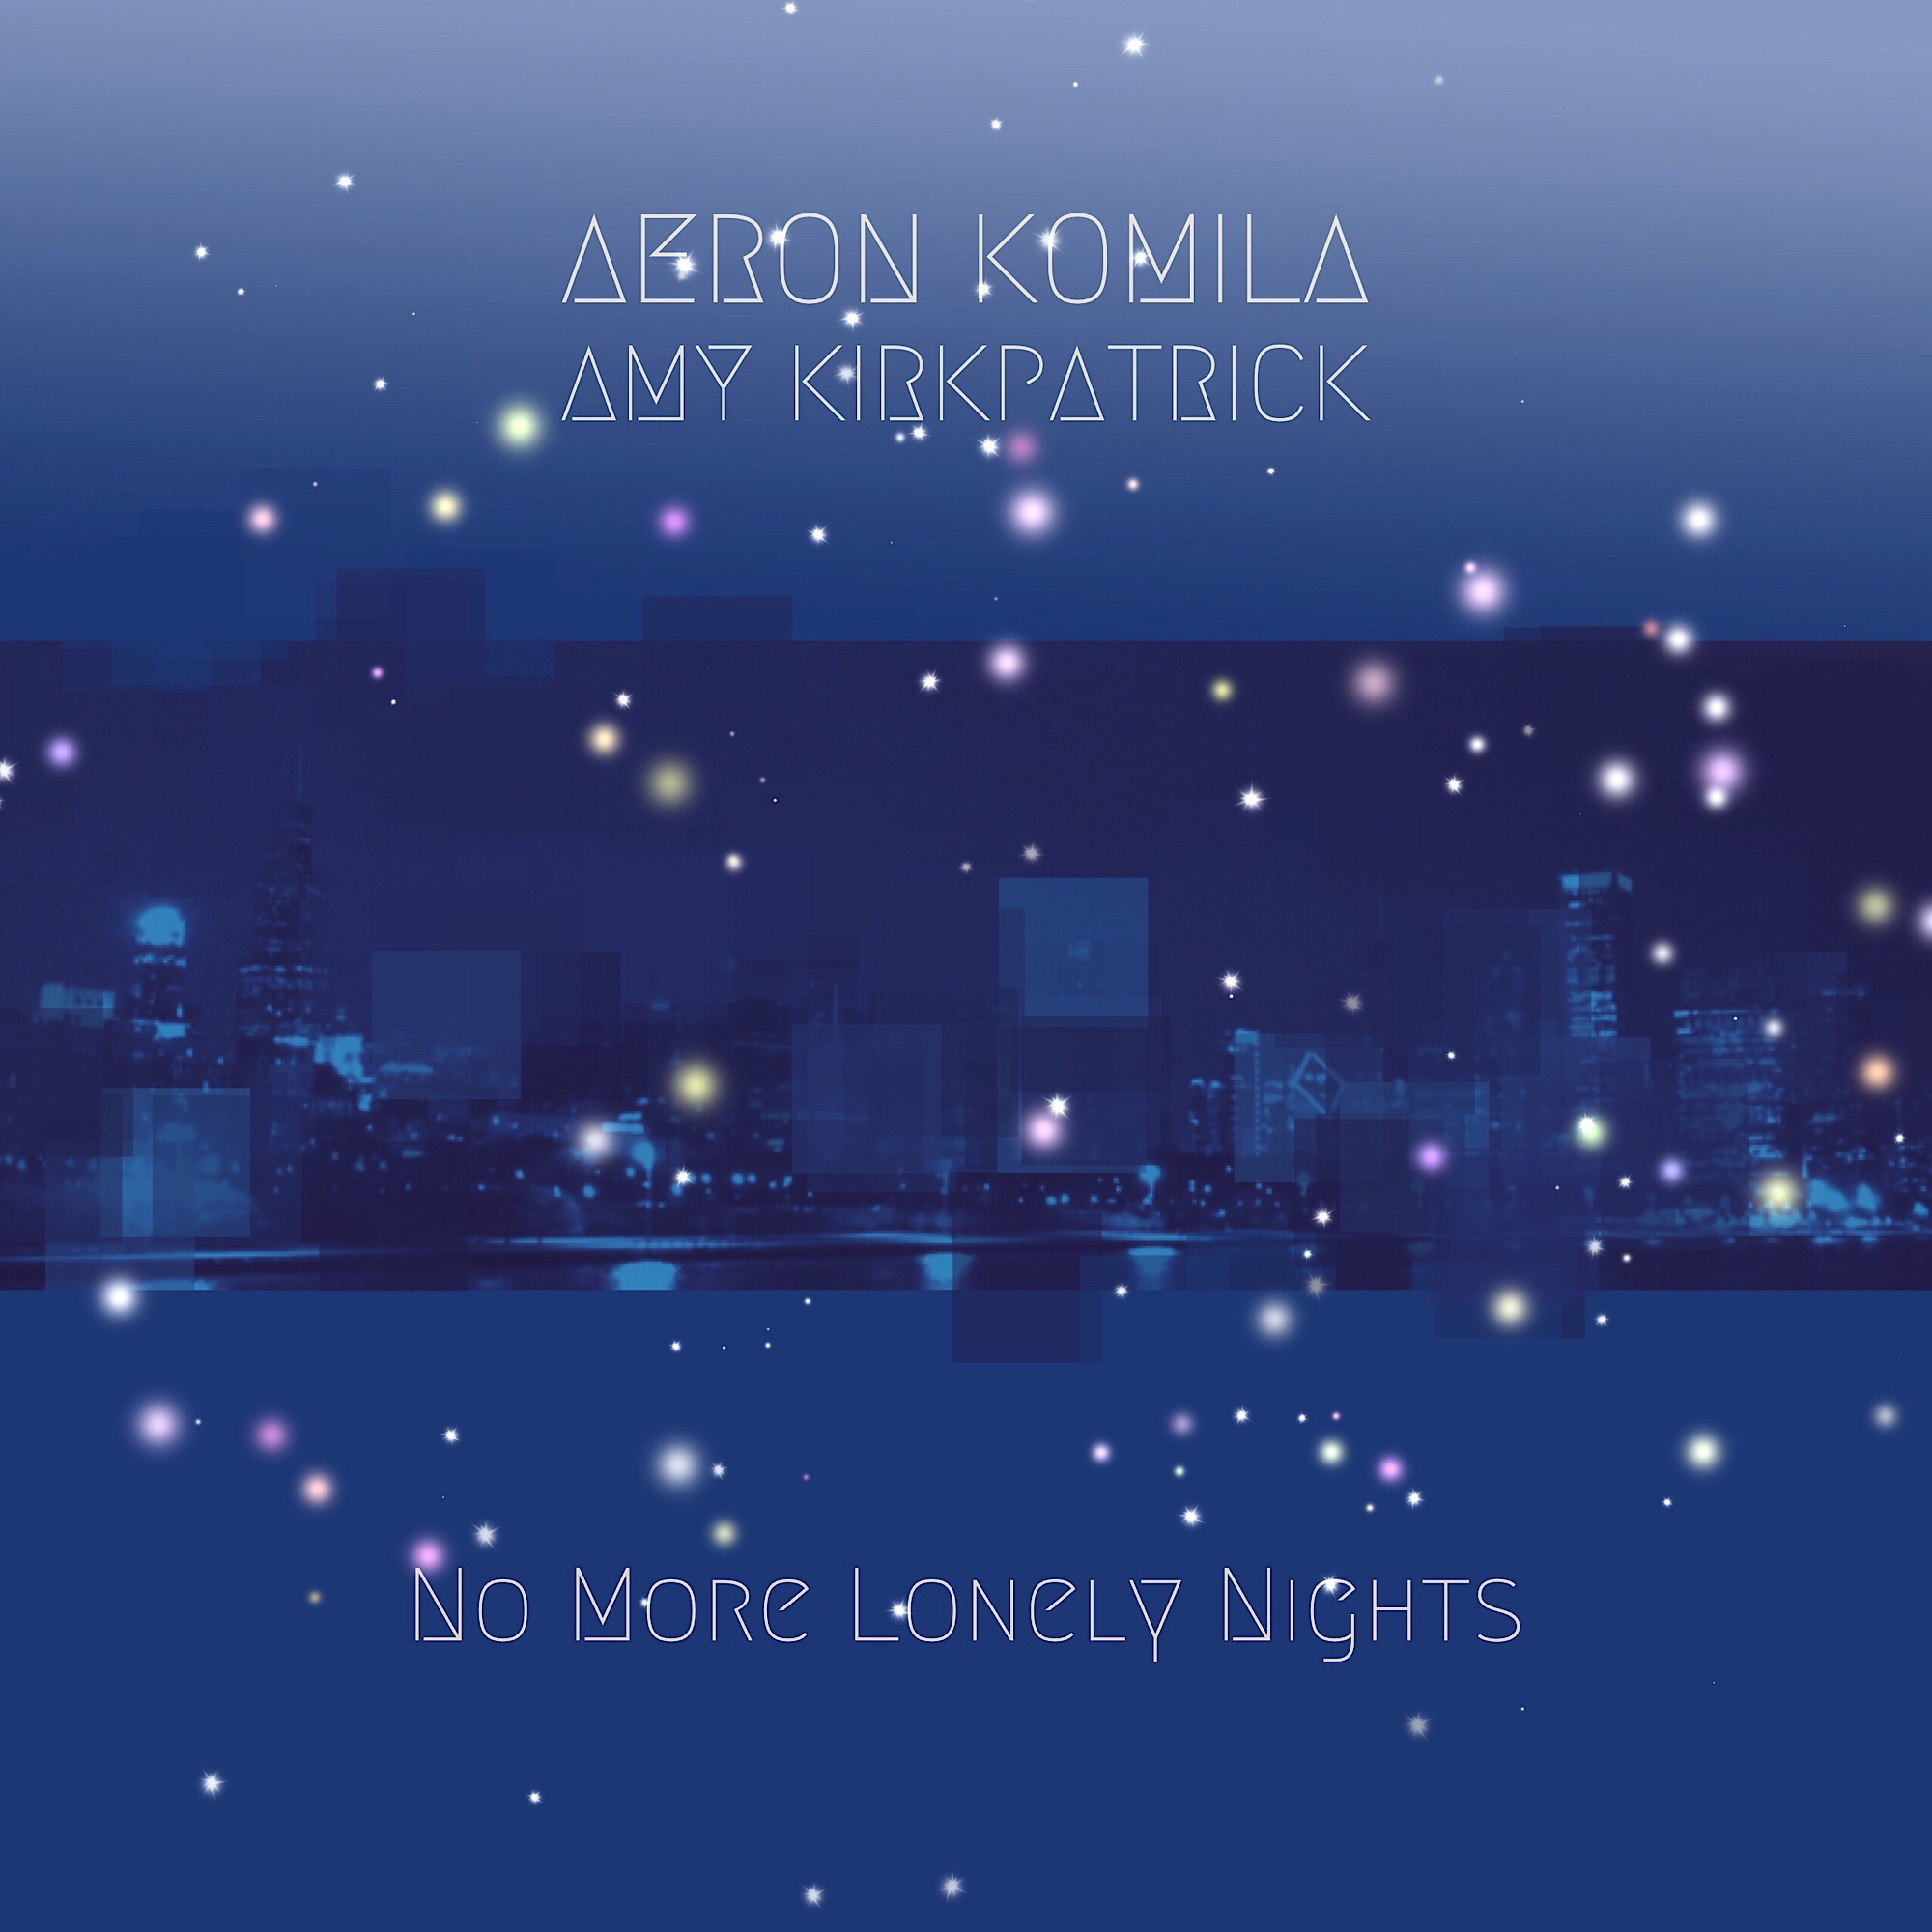 Aeron Komila - No More Lonely Nights (Extended Mix)